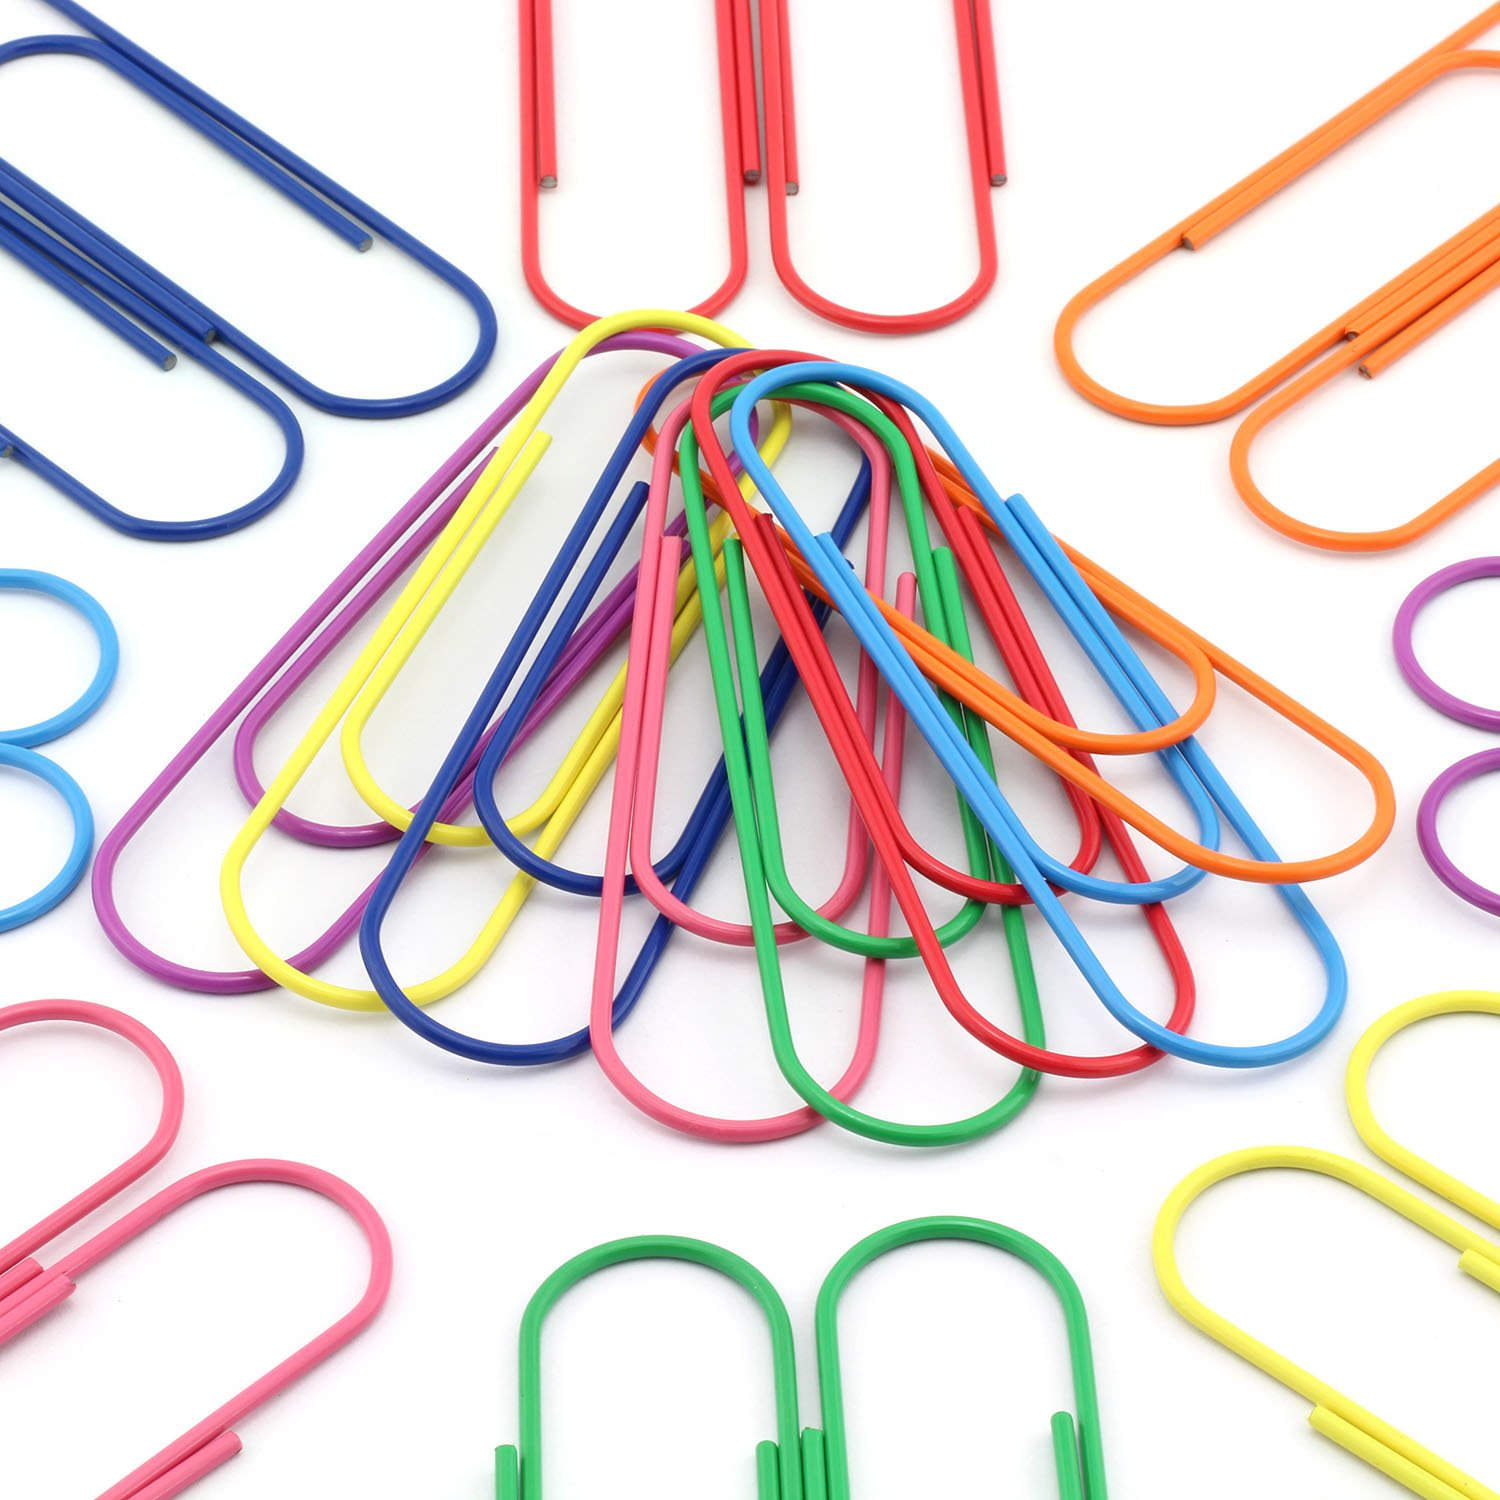 NXG 40 Pack 4 Inches Mega Large Paper Clips - 8 Colors 100mm Office Supply Accessories Cute Paper Needle Multicolor Bookmark.